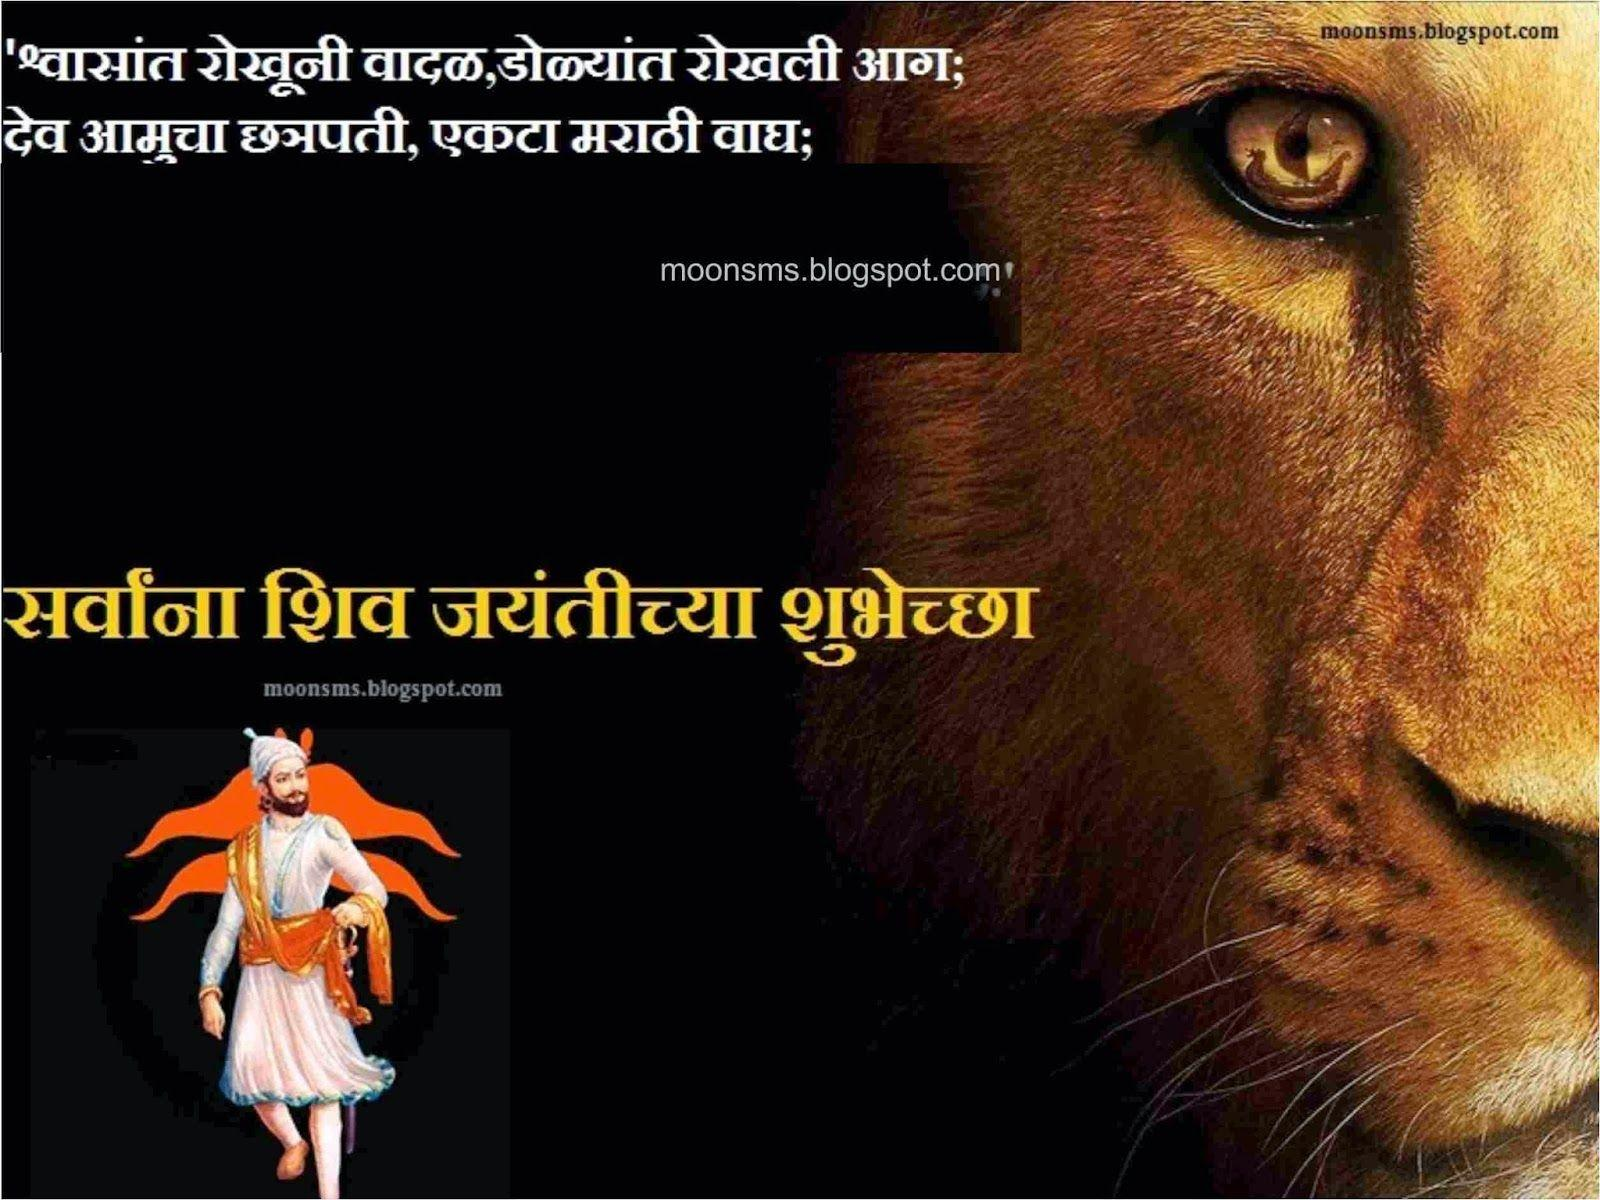 Shivaji Maharaj Hd Shayari Wallpapers Wallpaper Cave